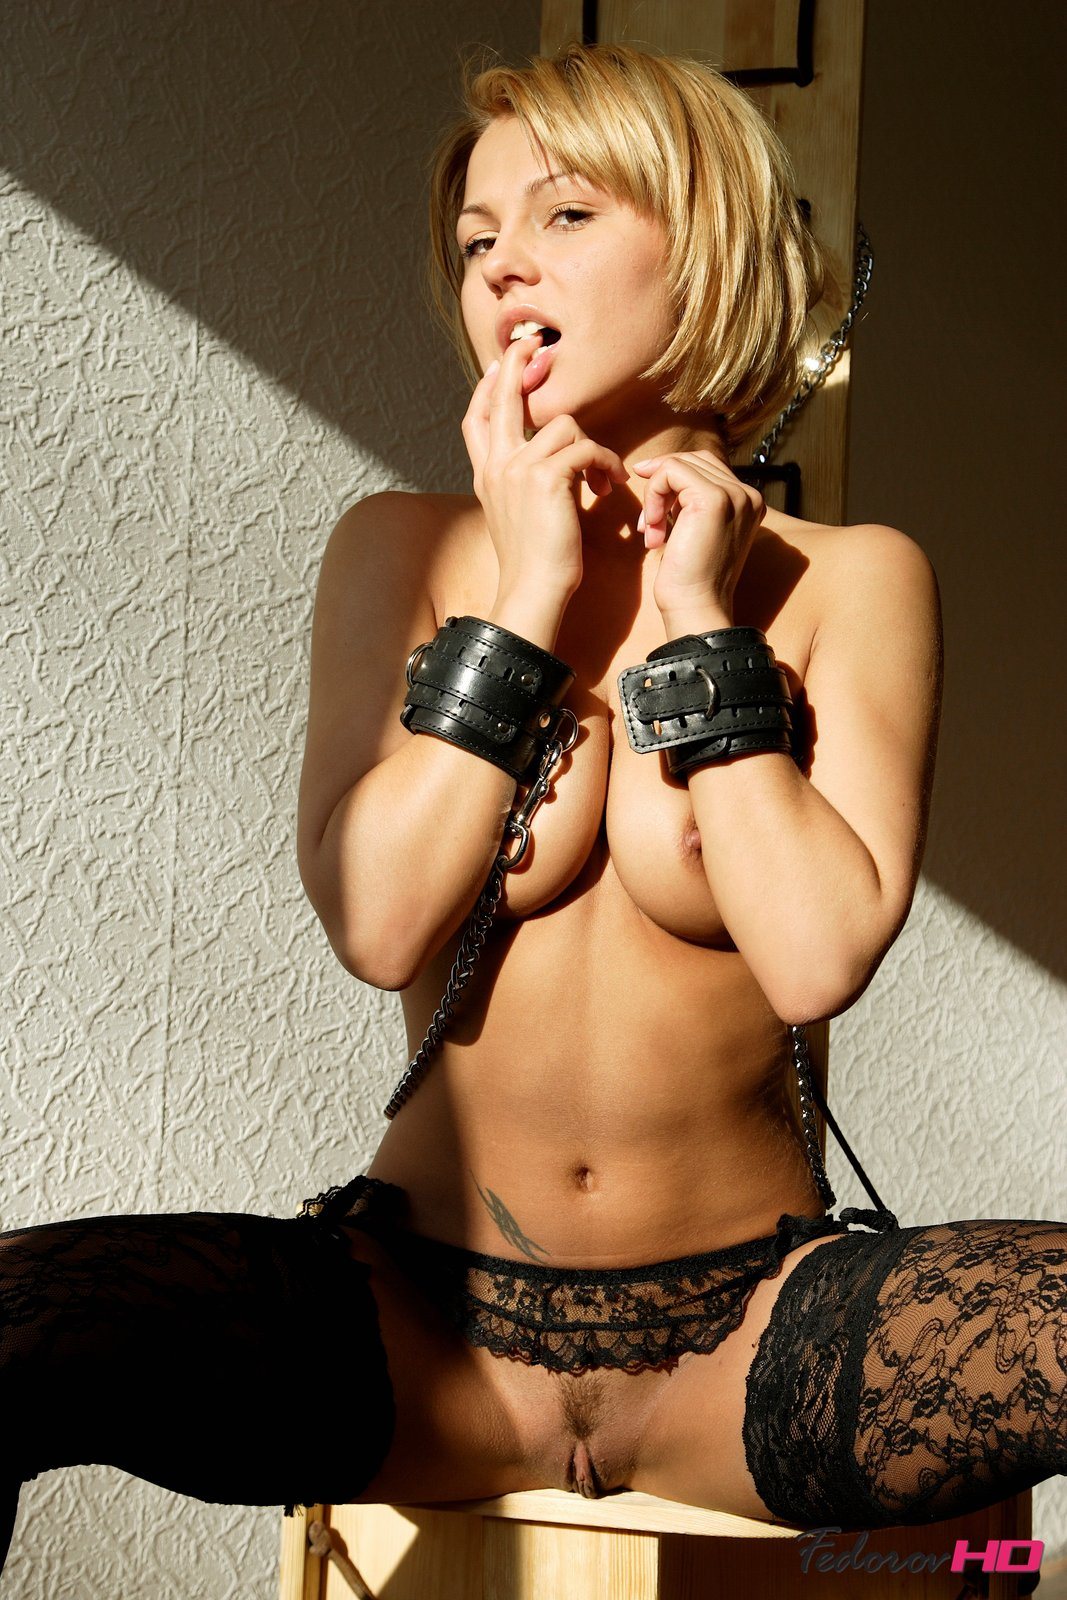 Shackles and lace stockings portrays the naughty side of this blonde, who's sexy and submissive